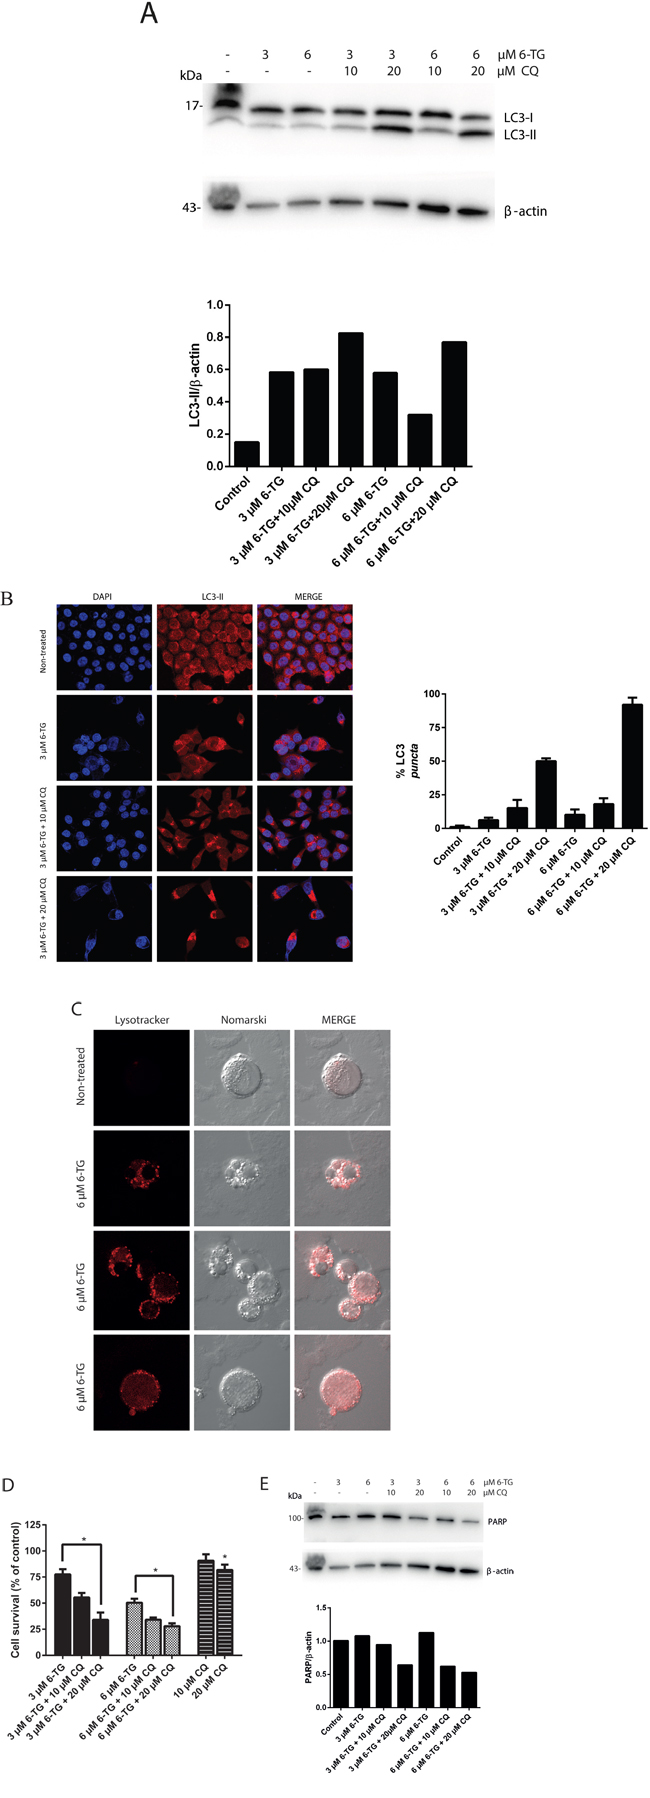 Suppression of autophagy by chloroquine sensitizes 6-TG mediated cell death in colorectal cancer cell lines.